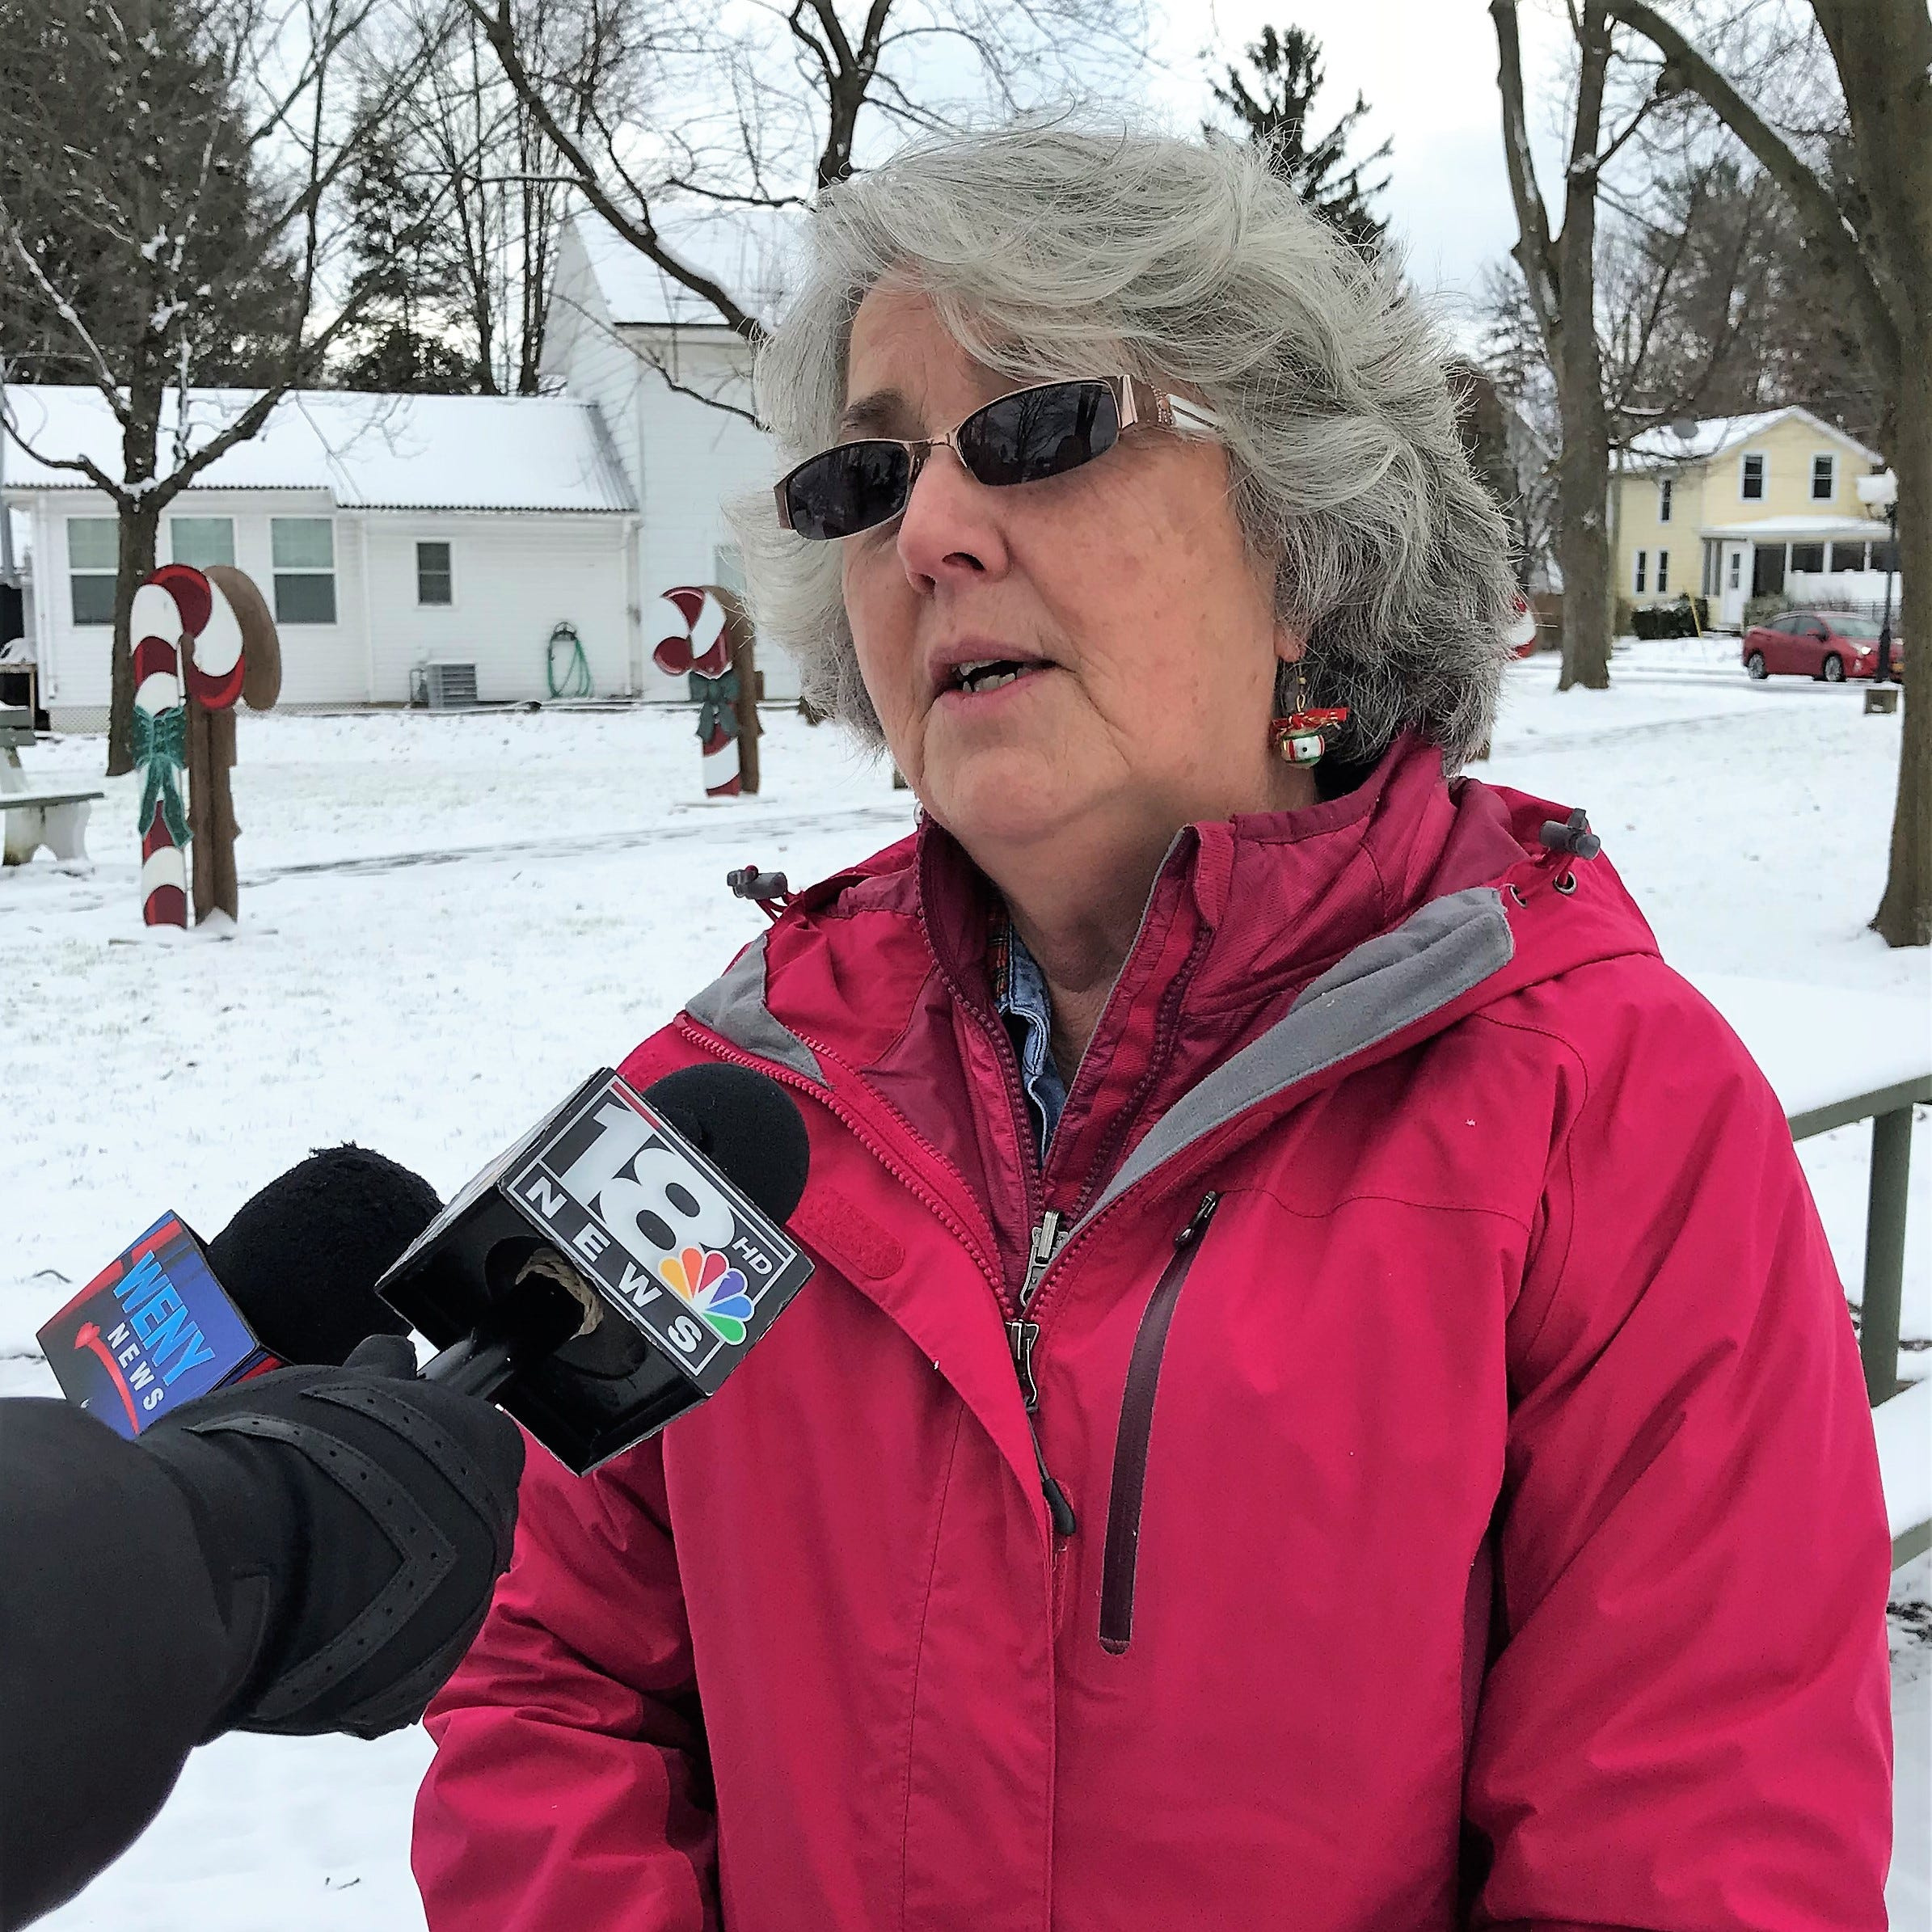 Horseheads Mayor Louise McIntosh steps down, citing lack of support from village trustees